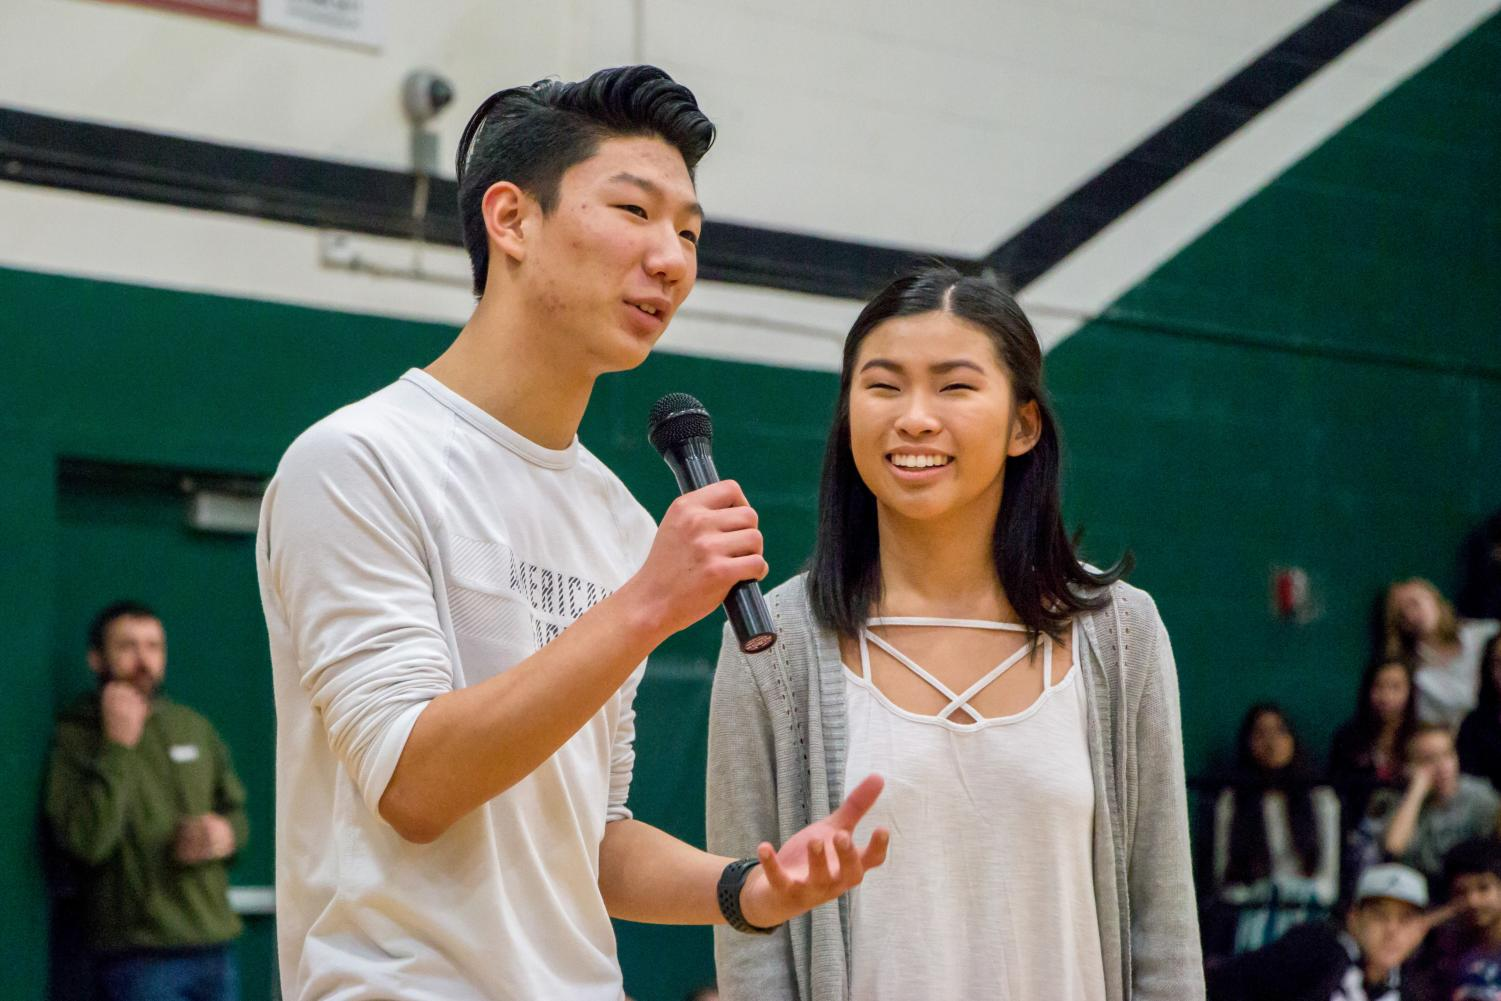 Trevor Rabosky and Abby Lam talk to students about the meaning of Sparrow Club and explain how to help Jakob.